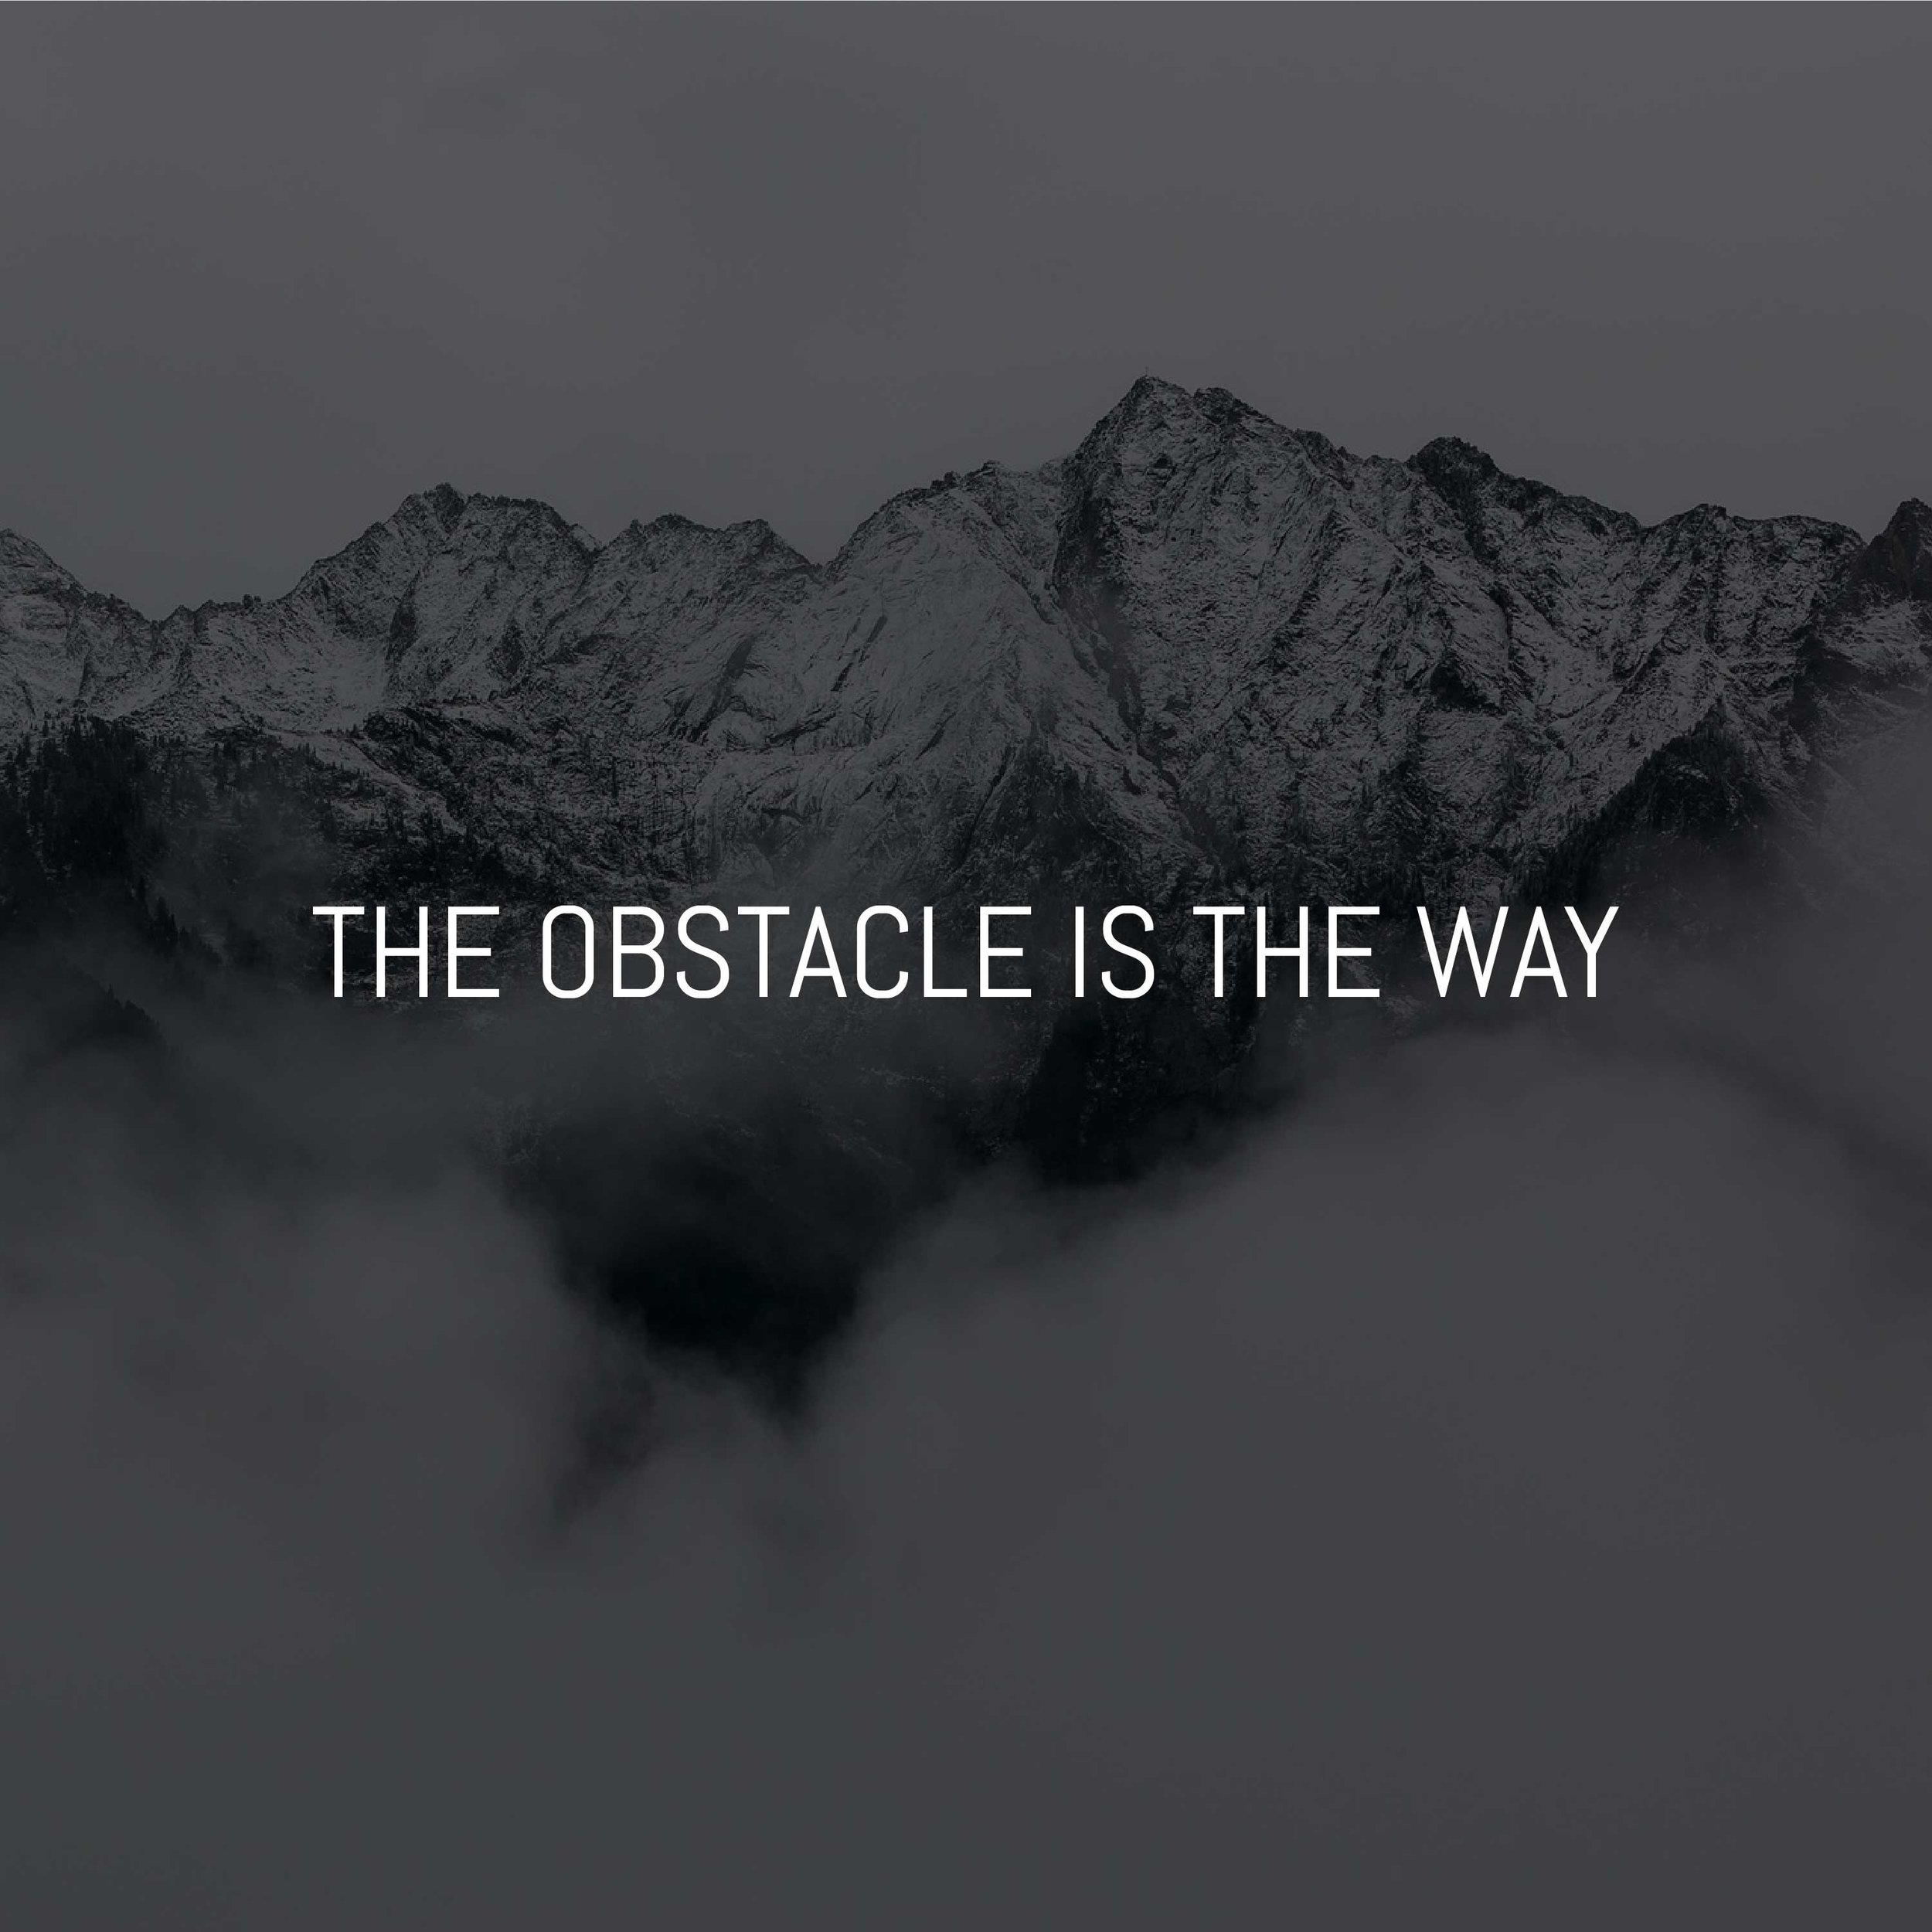 THE-OBSTACLE-IS-THE-WAY-.jpg